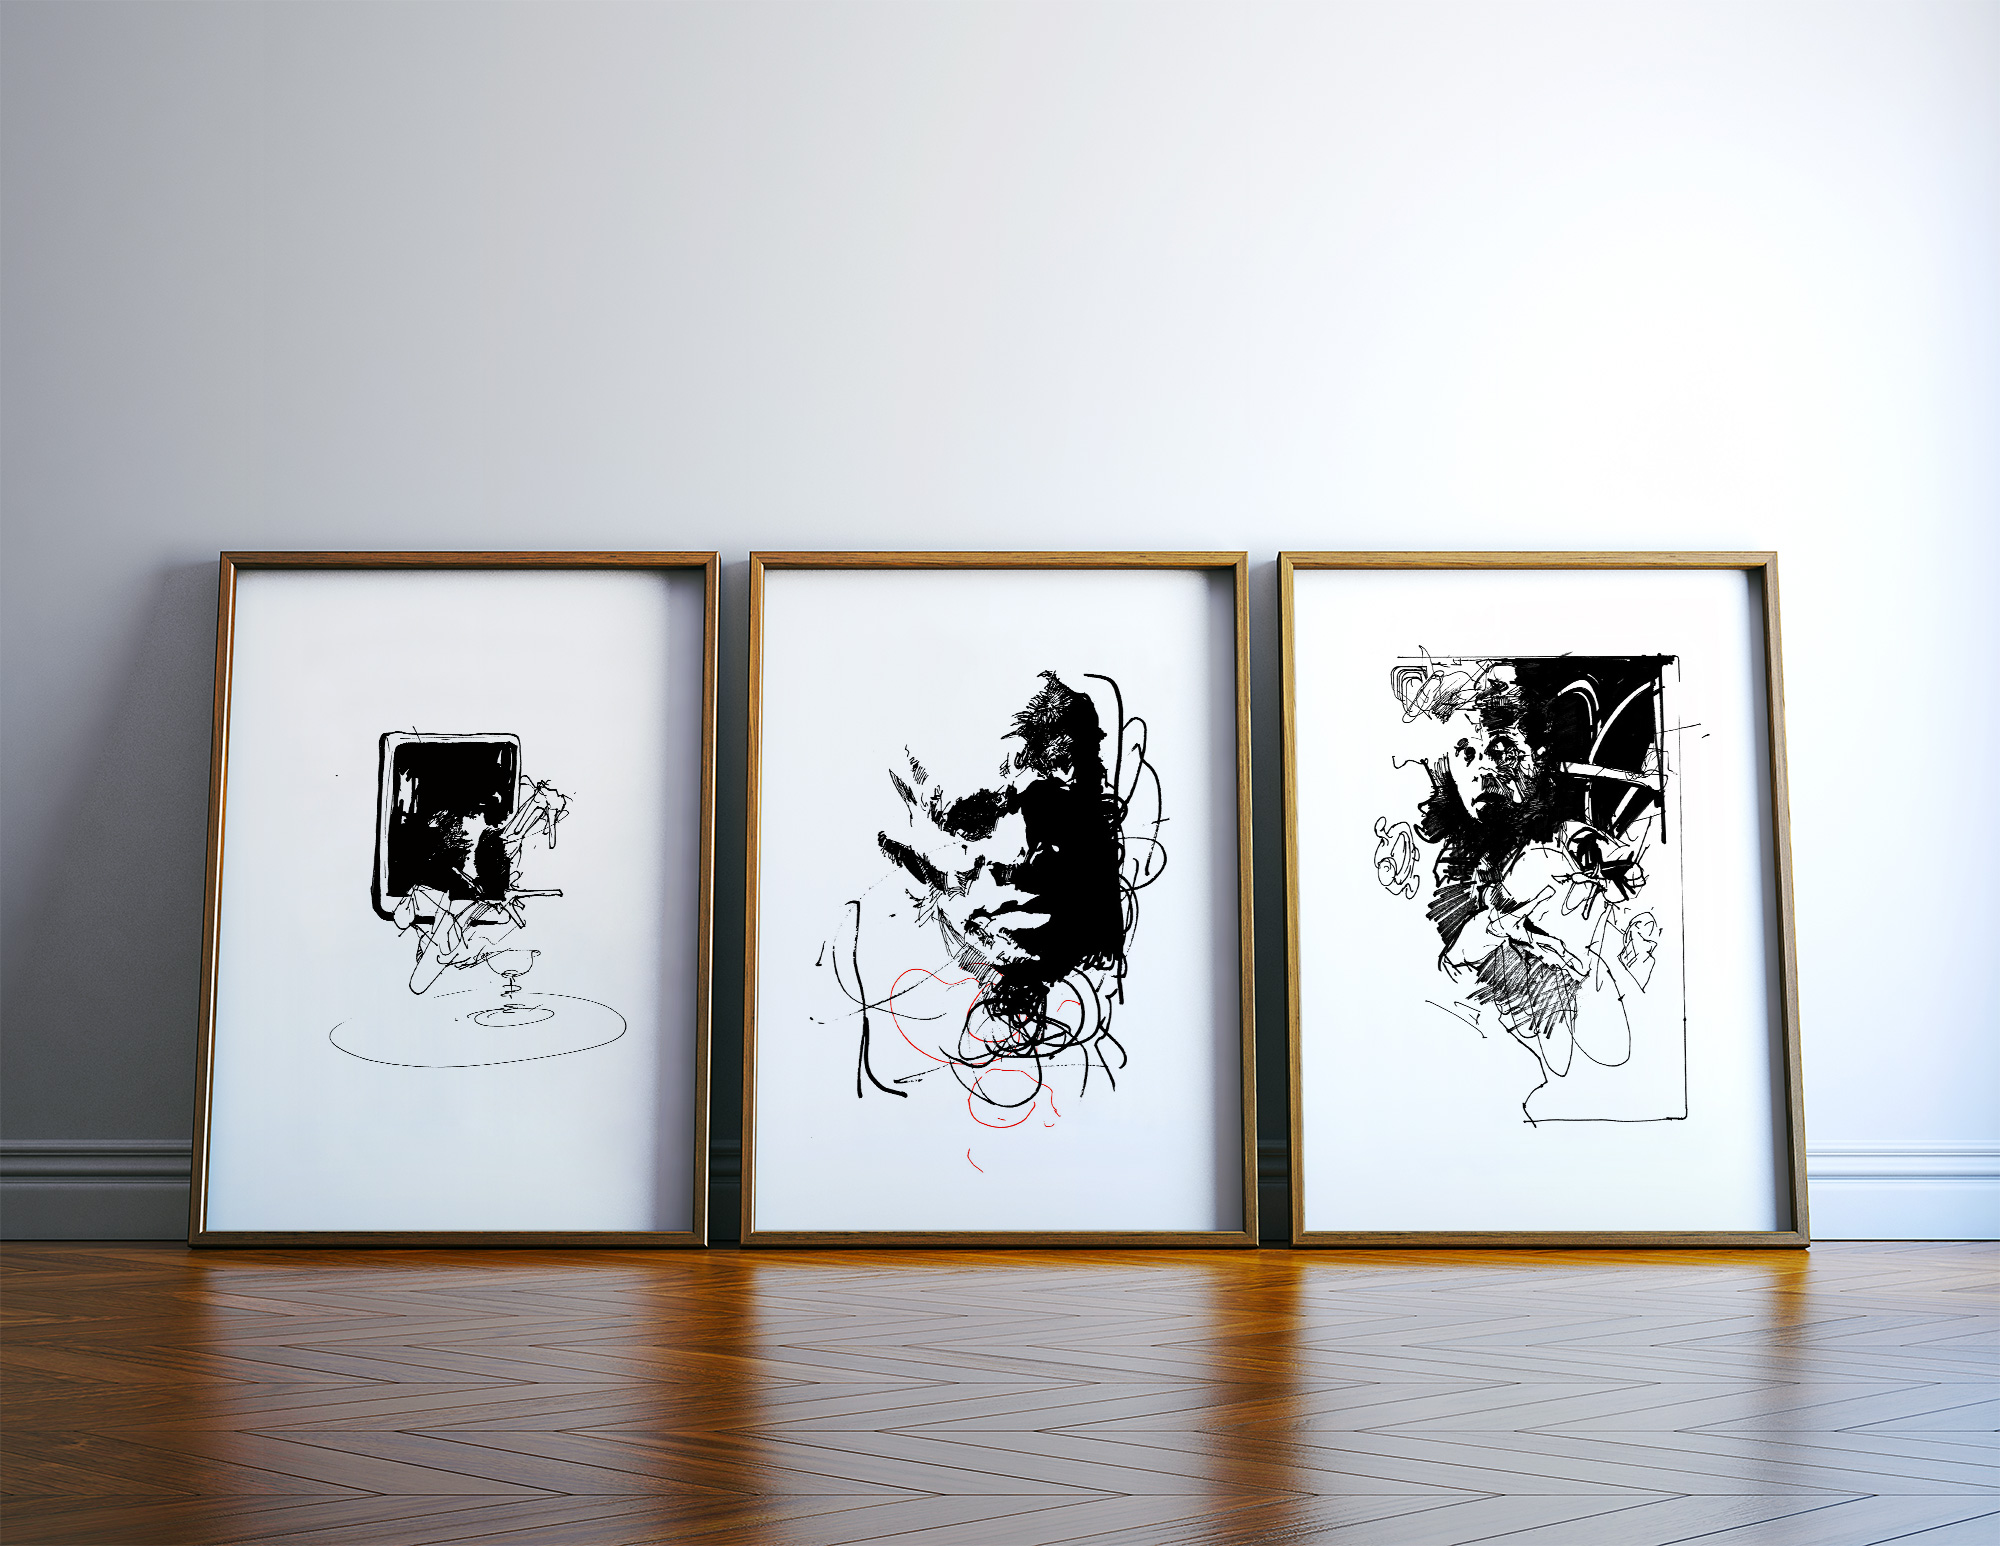 posters-prints, giclee-print, abstract, expressive, figurative, portraiture, patterns, people, black, white, ink, paper, black-and-white, contemporary-art, danish, decorative, design, expressionism, faces, interior, interior-design, modern, modern-art, nordic, posters, prints, scandinavien, Buy original high quality art. Paintings, drawings, limited edition prints & posters by talented artists.